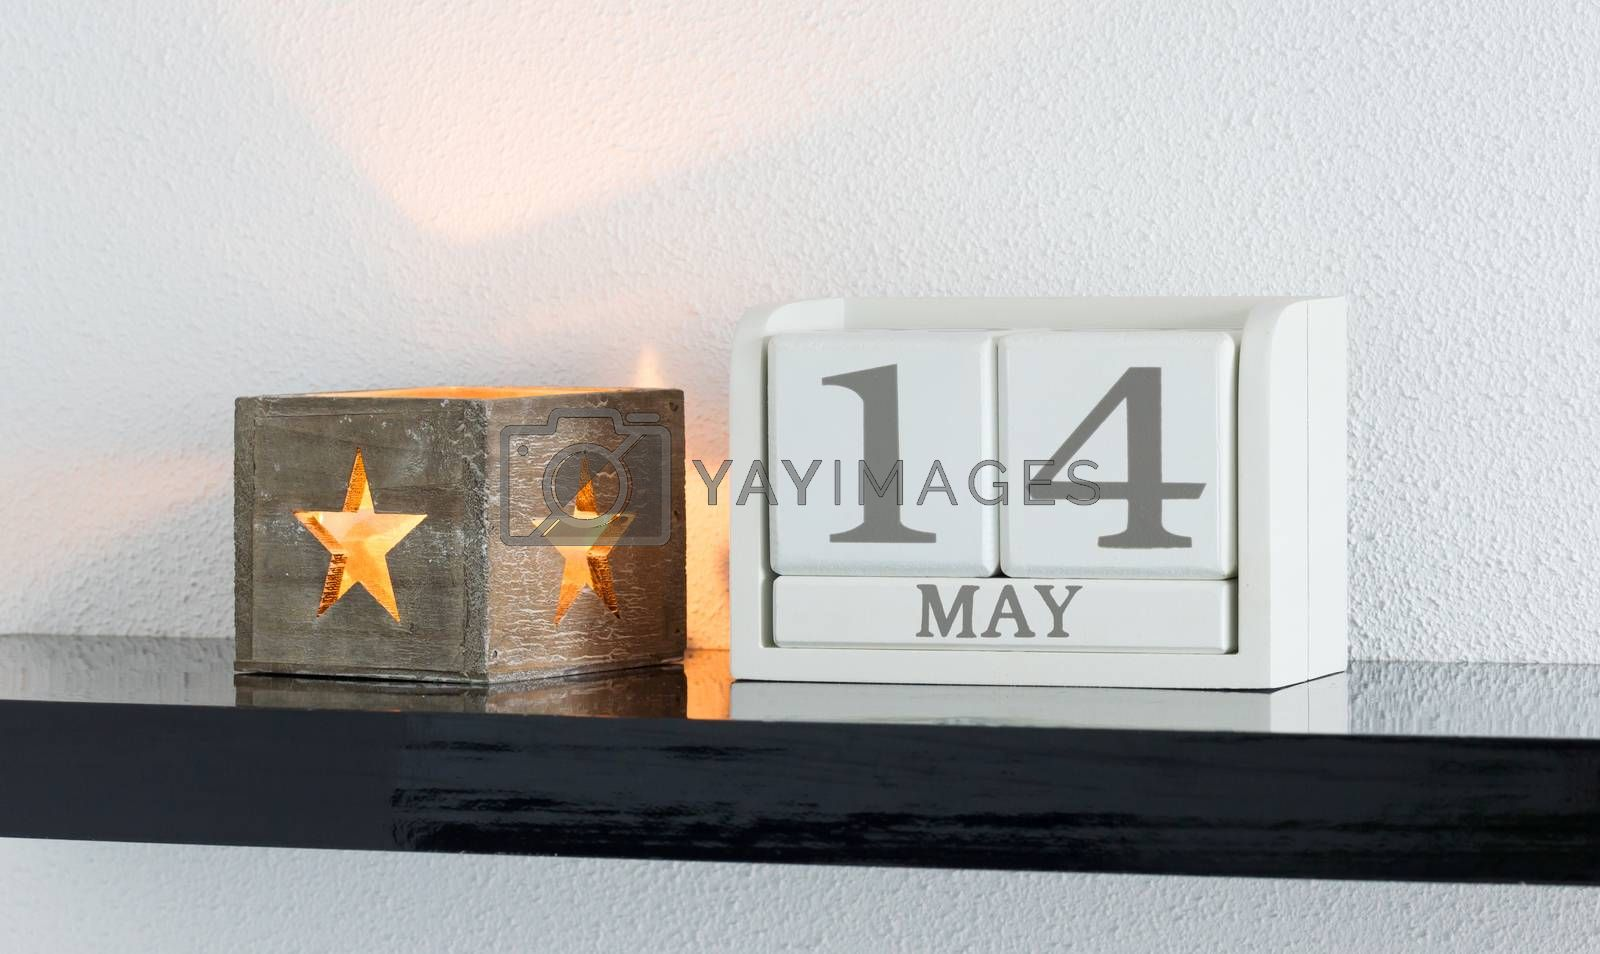 White block calendar present date 14 and month May by michaklootwijk